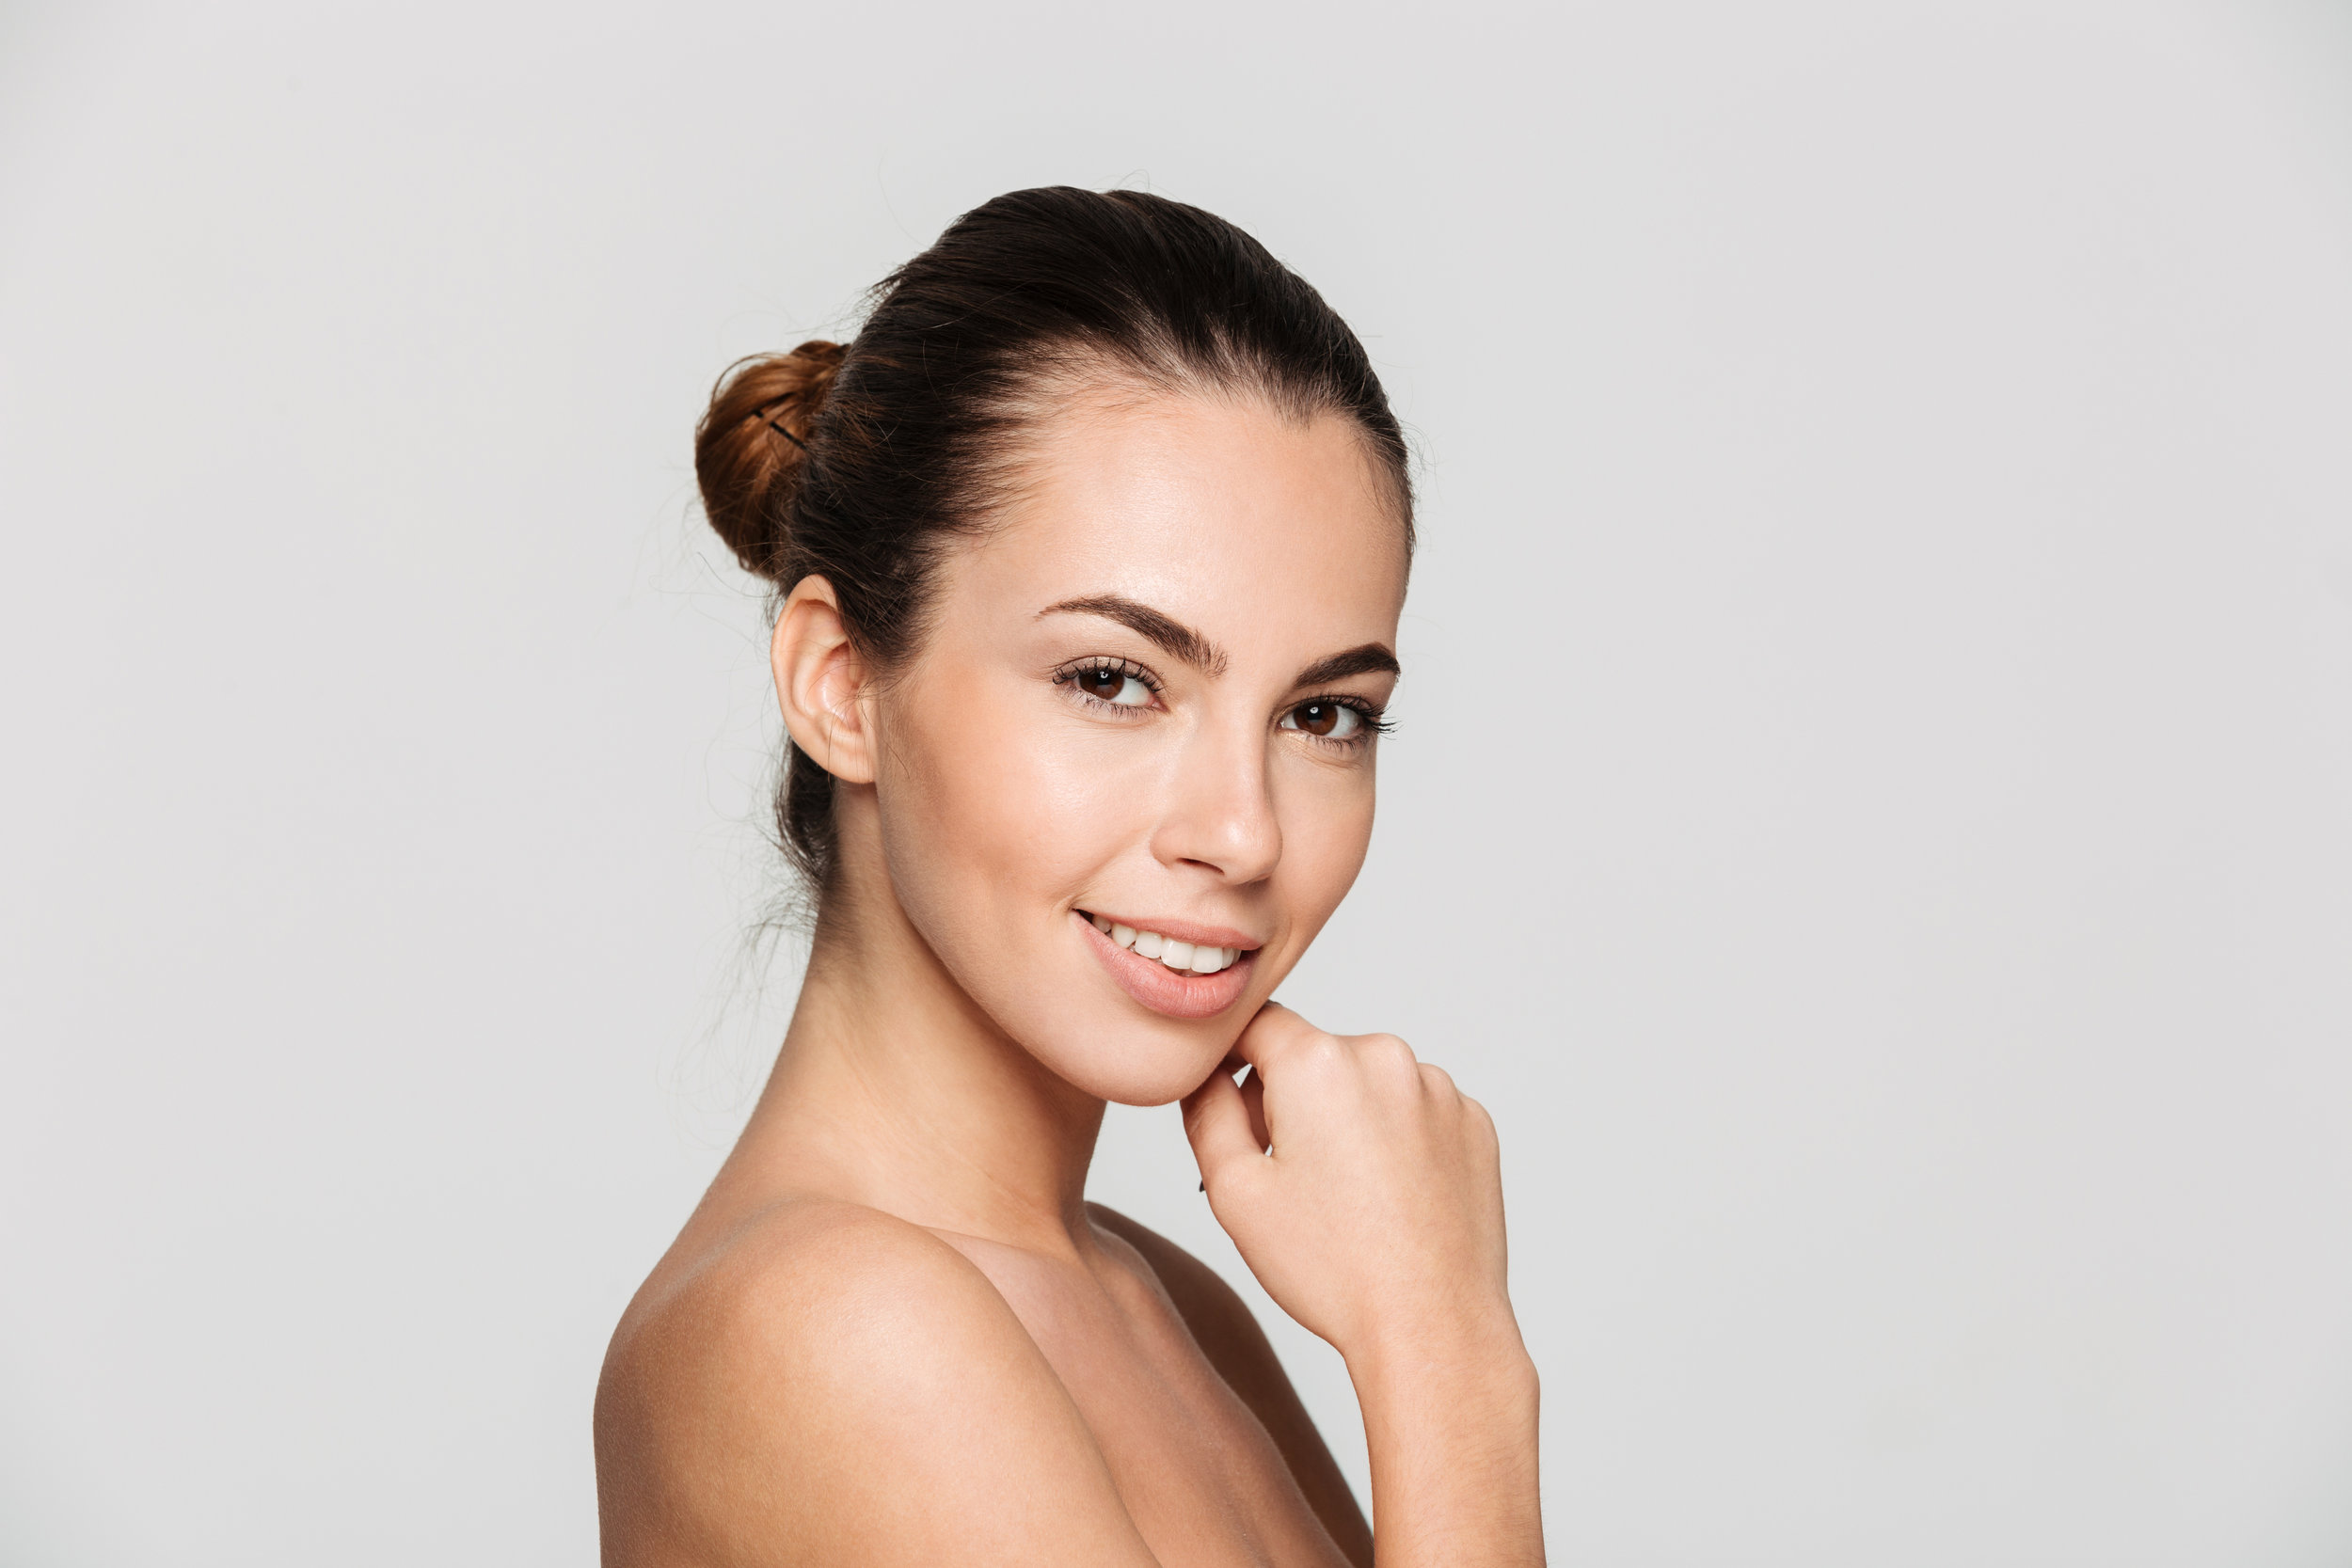 Botox/Dysport - Achieve younger-looking skin and see results that last for months.